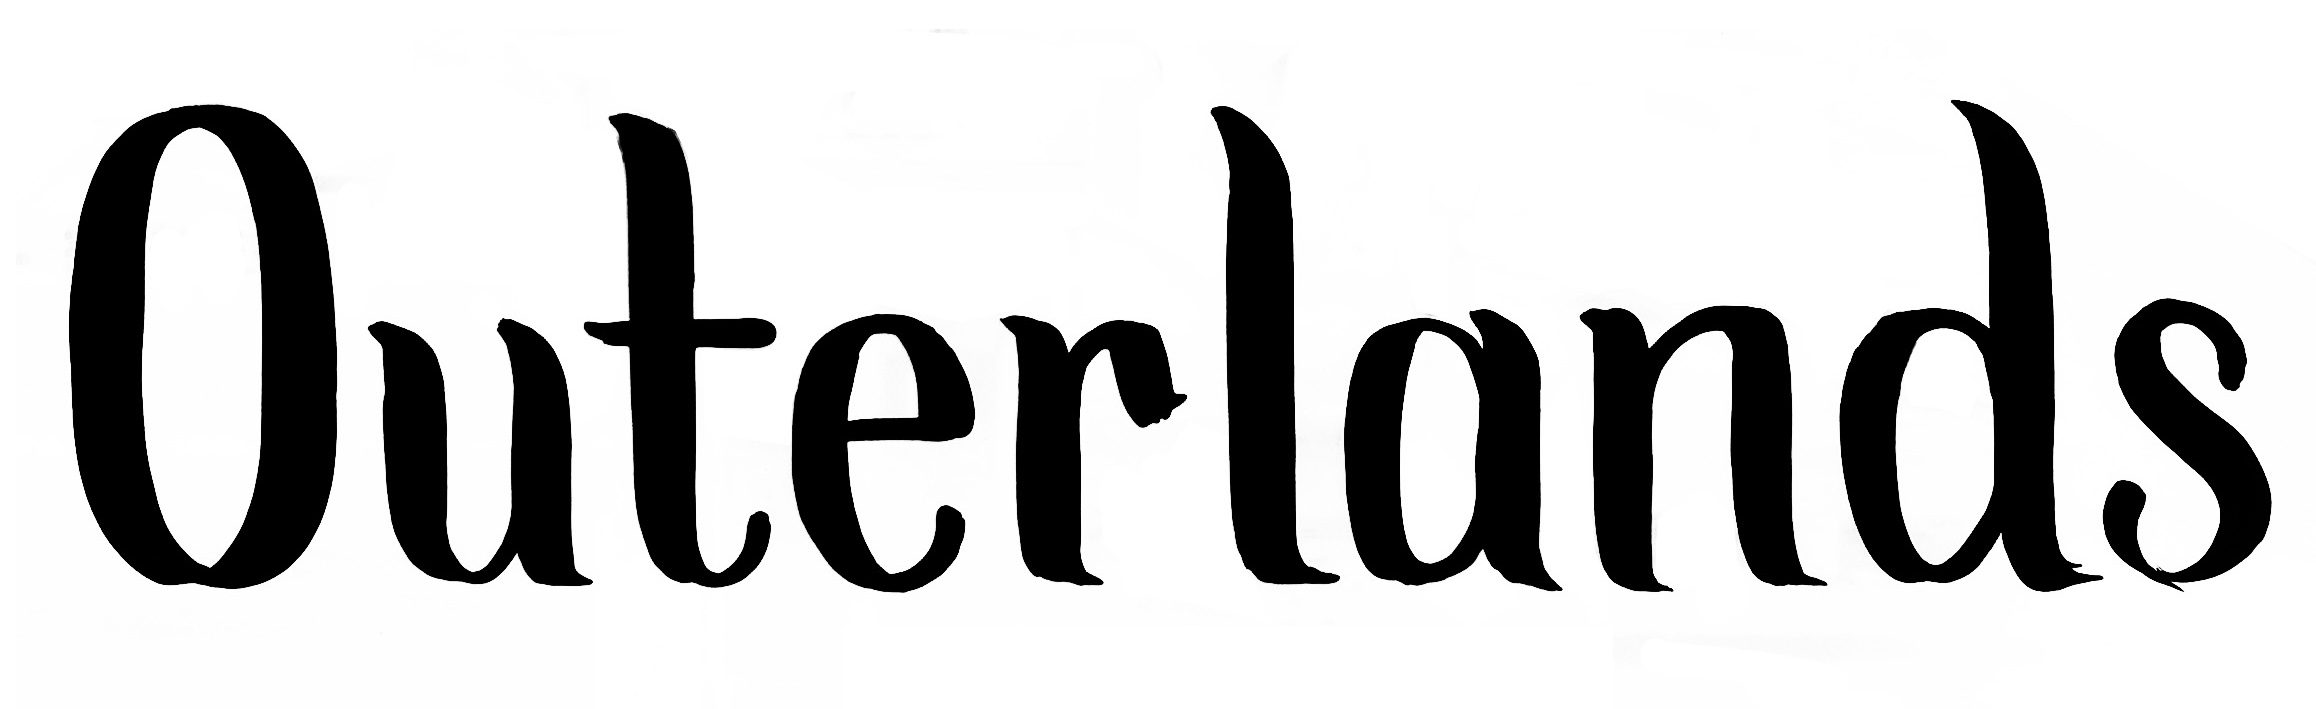 OUTERLANDS logotype crop.jpg